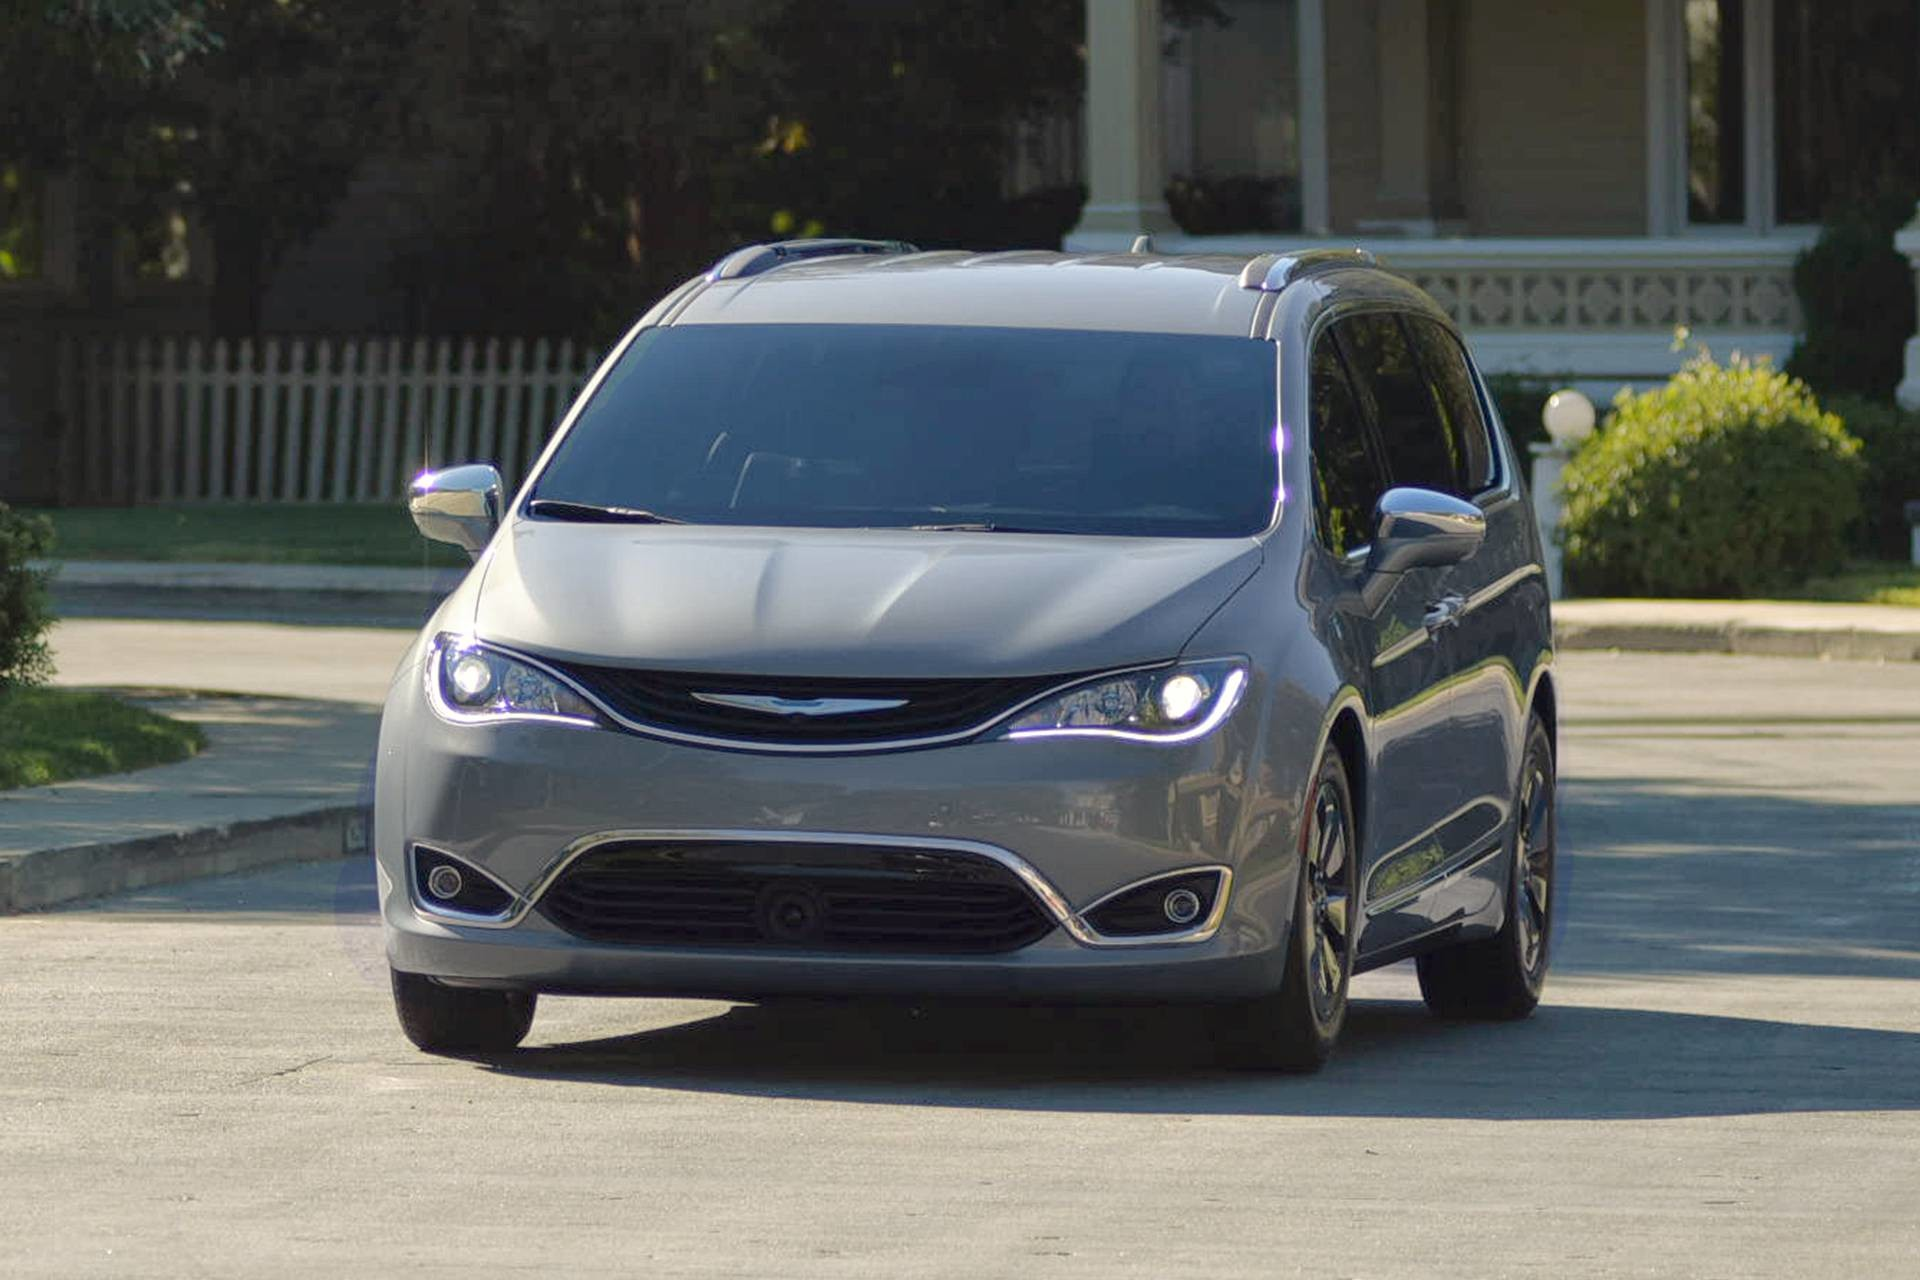 2019 Chrysler Pacifica Hybrid exterior view on residential street, shown in silver